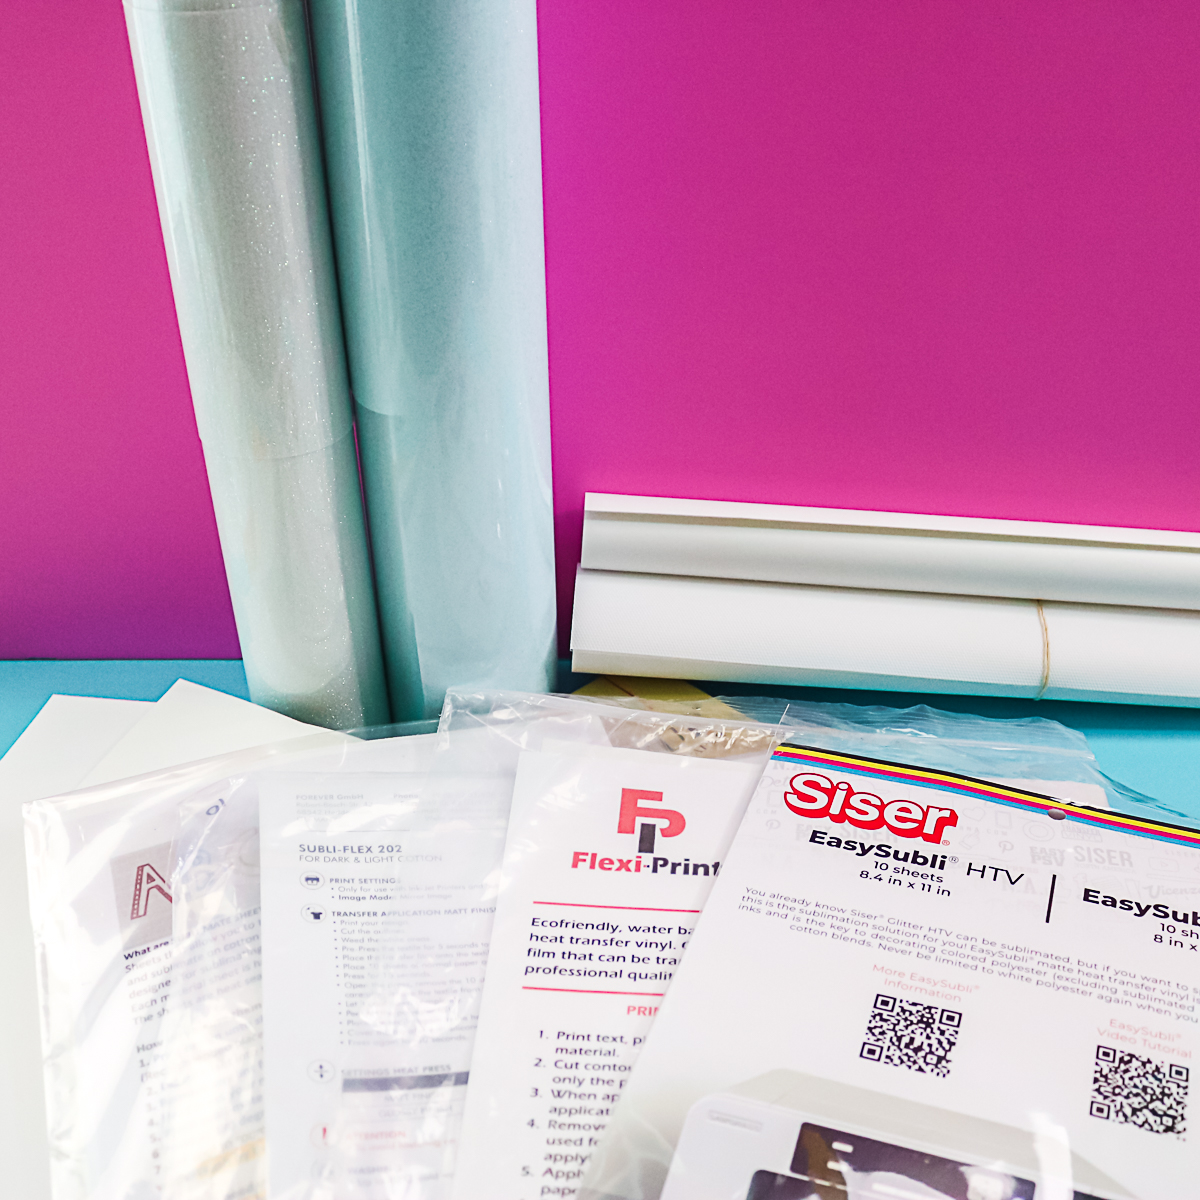 various products for dye sublimation on dark fabric